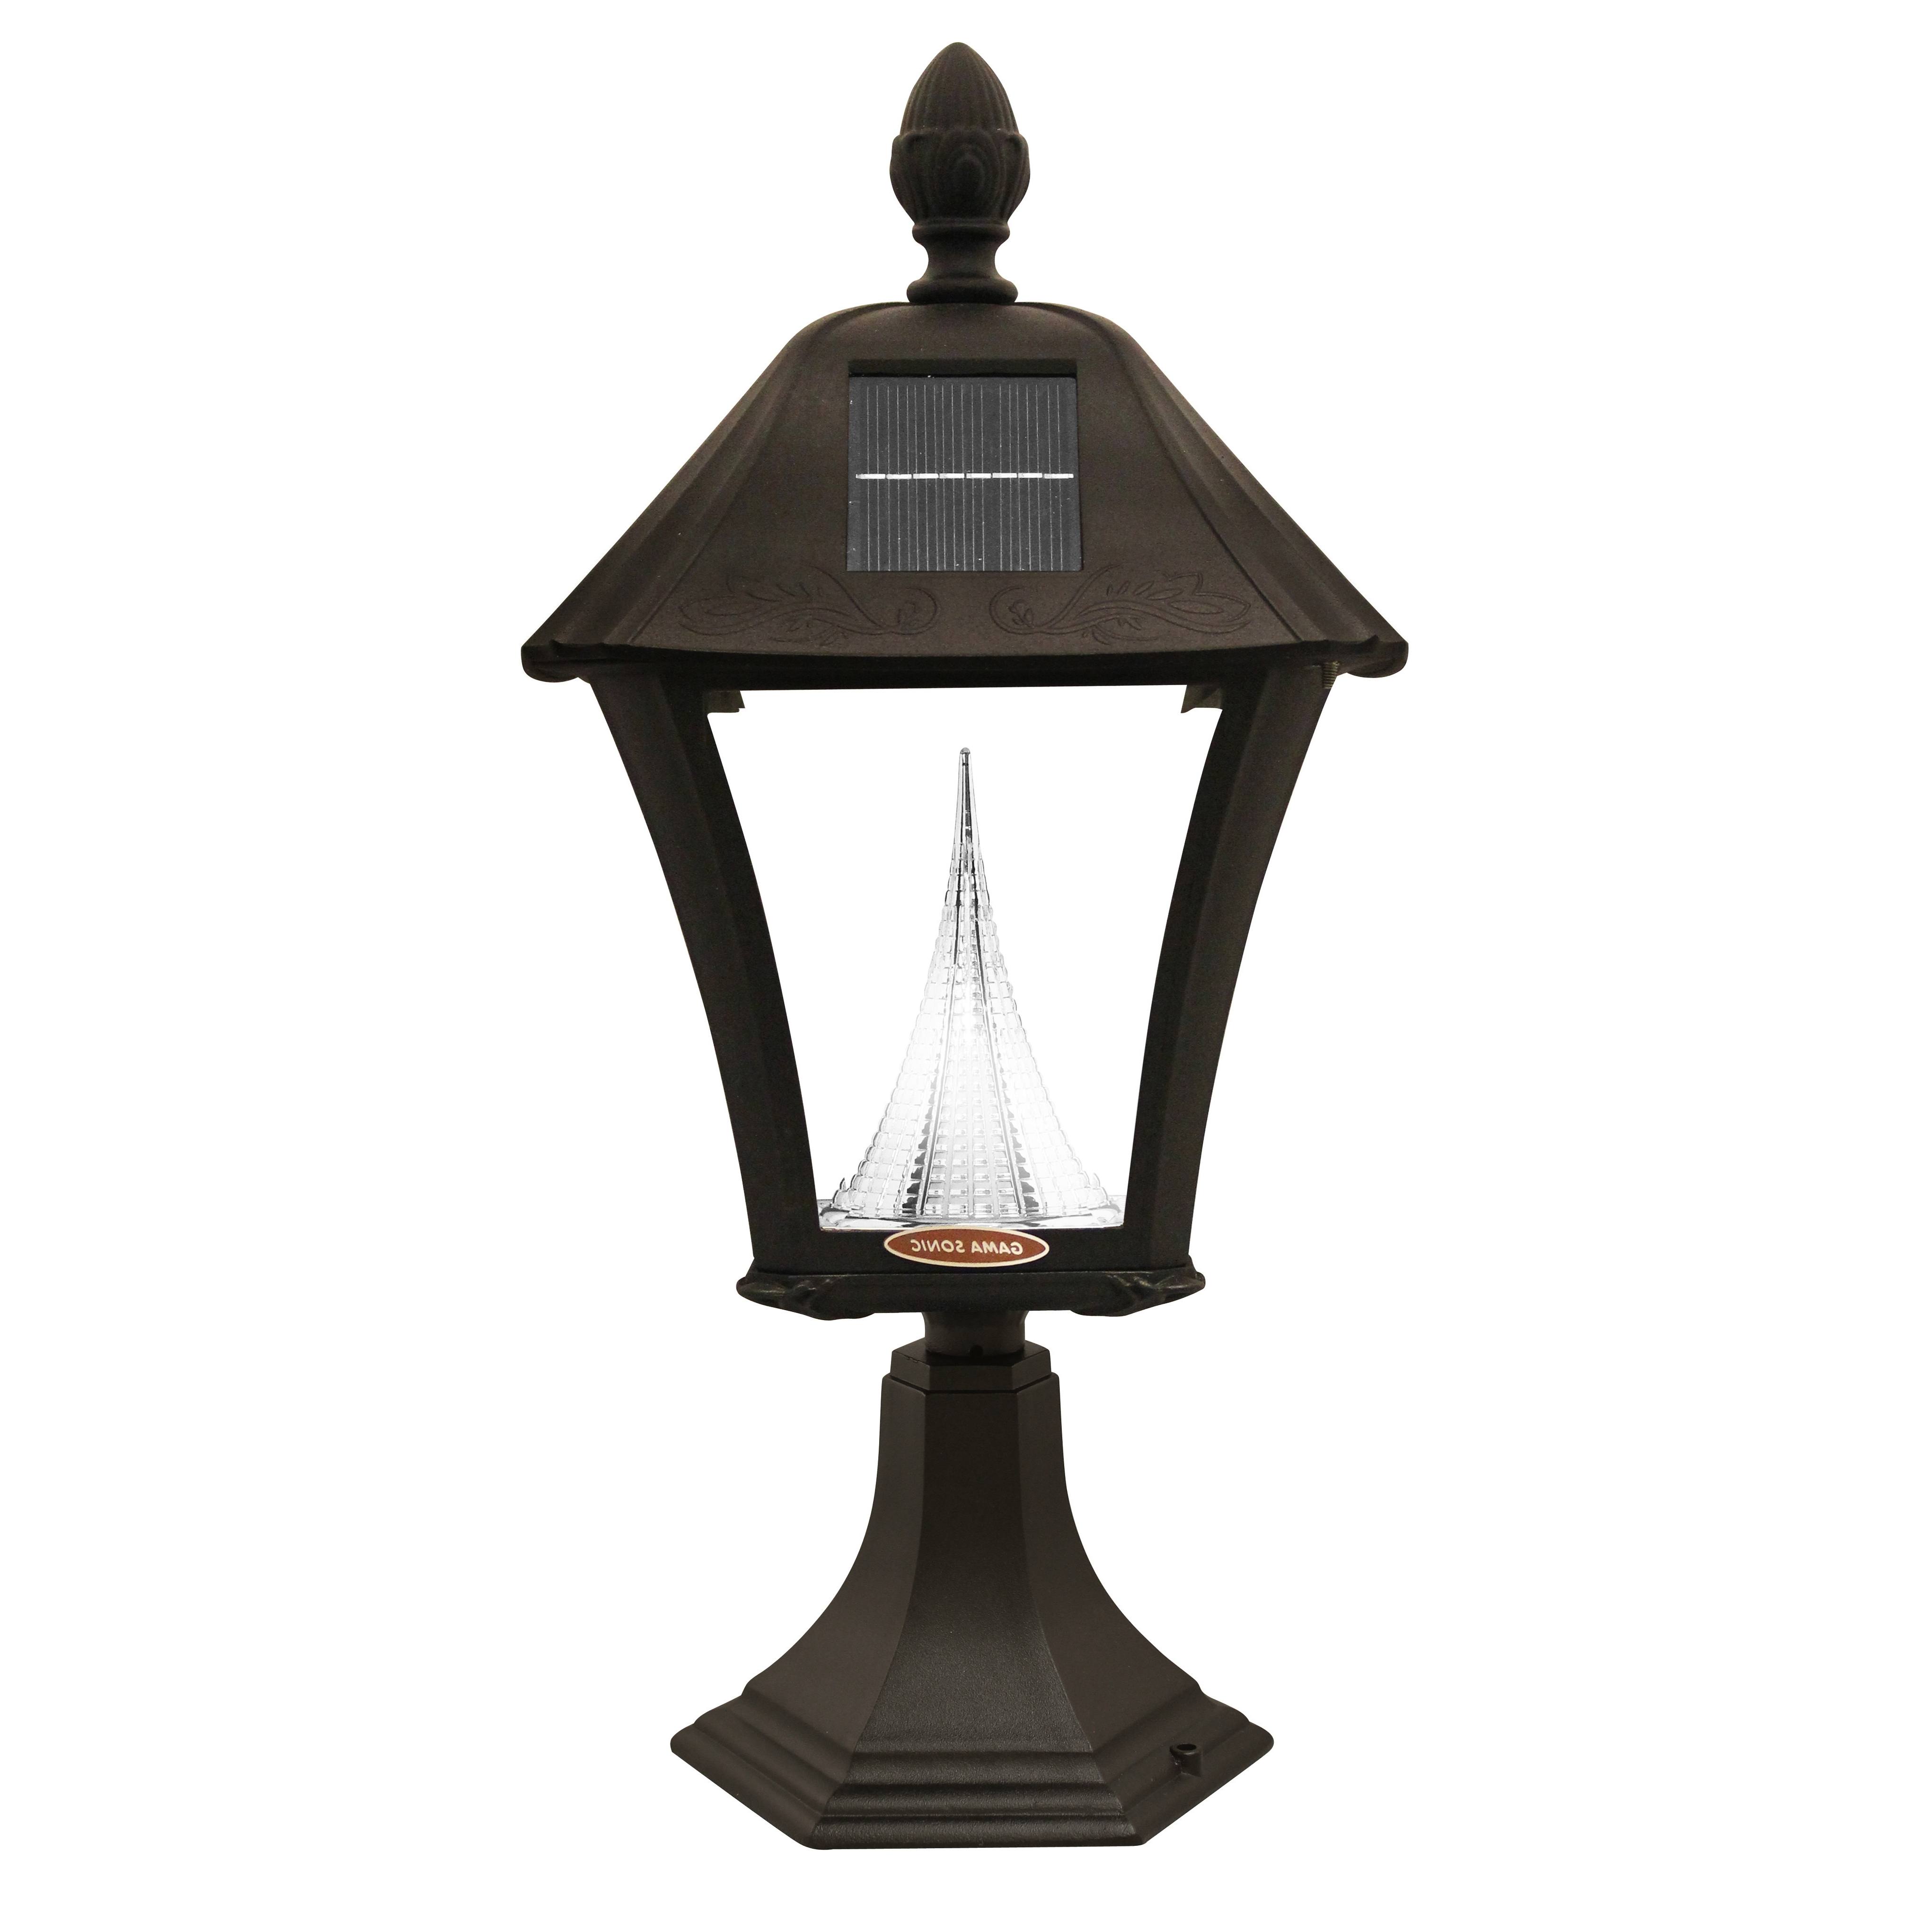 Solar Powered Outdoor Wall Lighting Wayfair Baytown 1 Light Lantern Throughout Current Battery Operated Outdoor Lights At Wayfair (View 17 of 20)